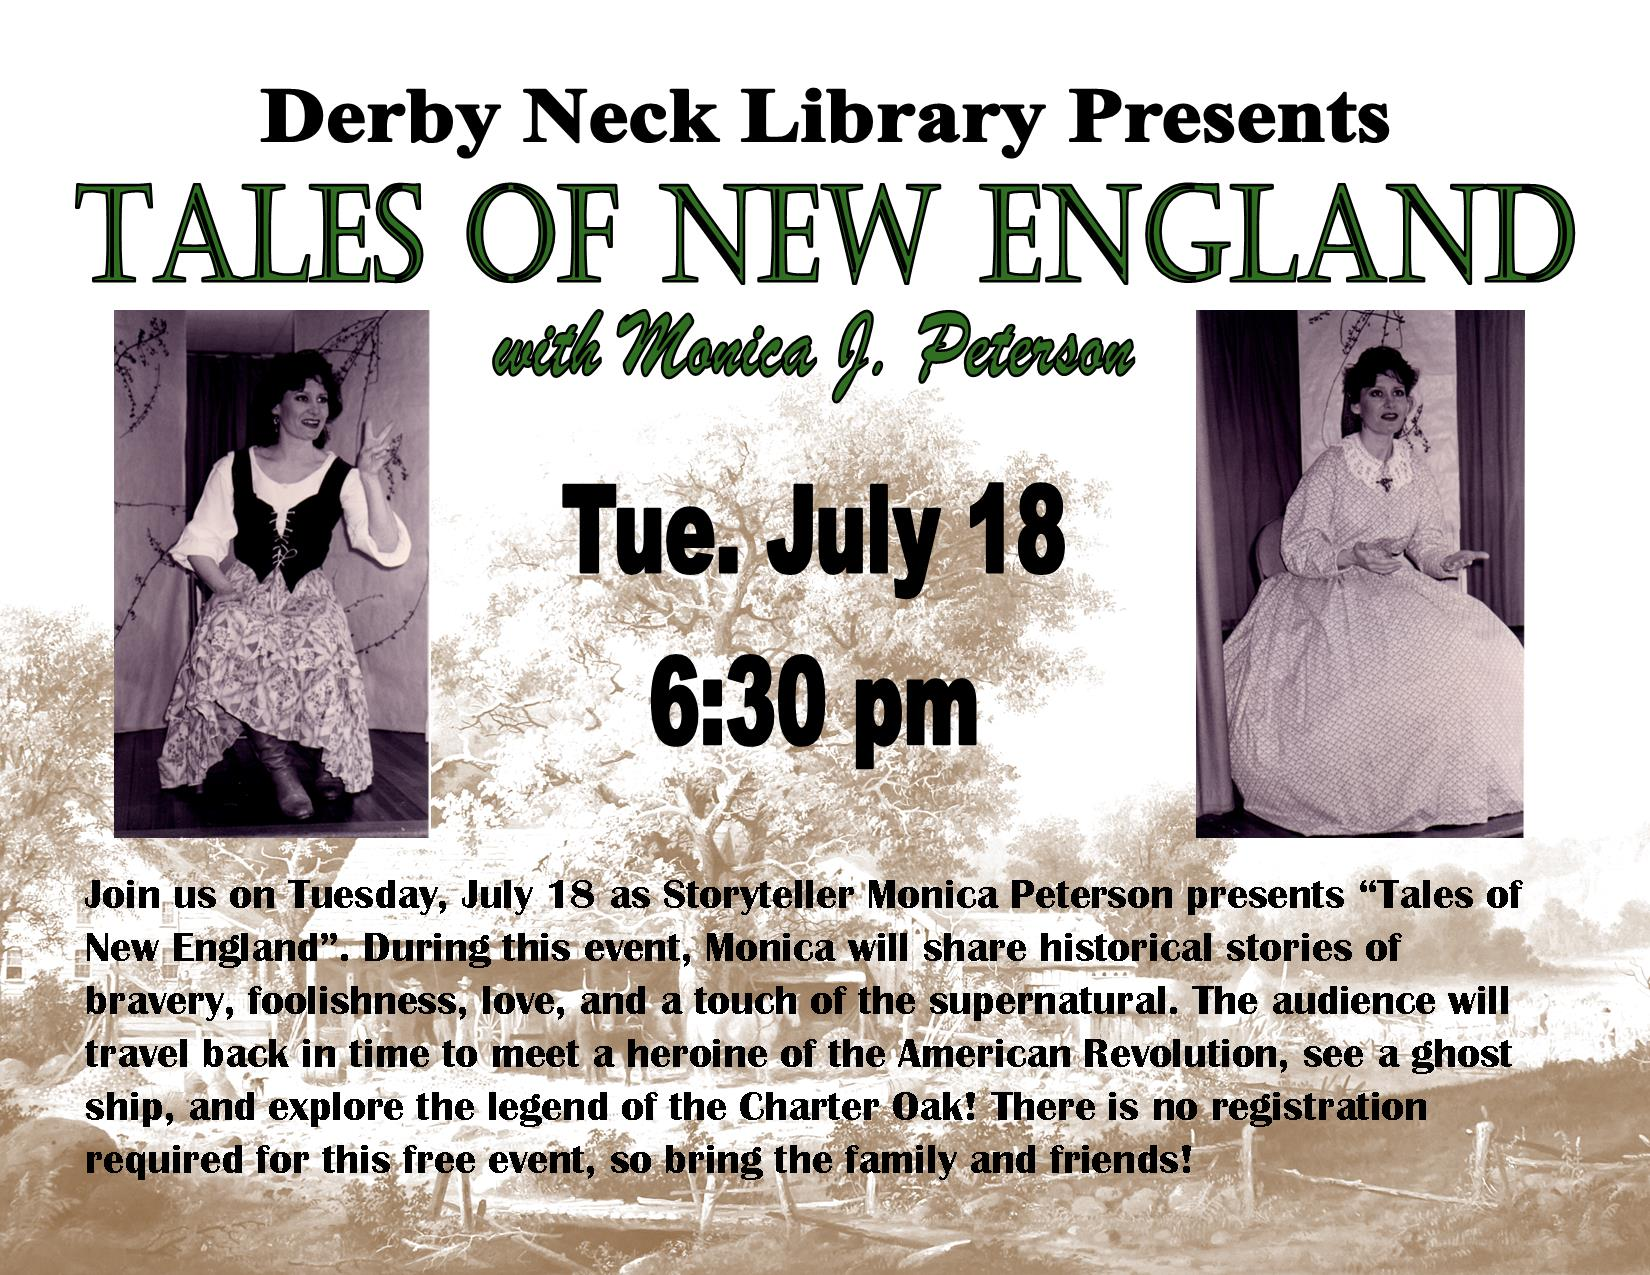 Tales of New England with Monica Peterson